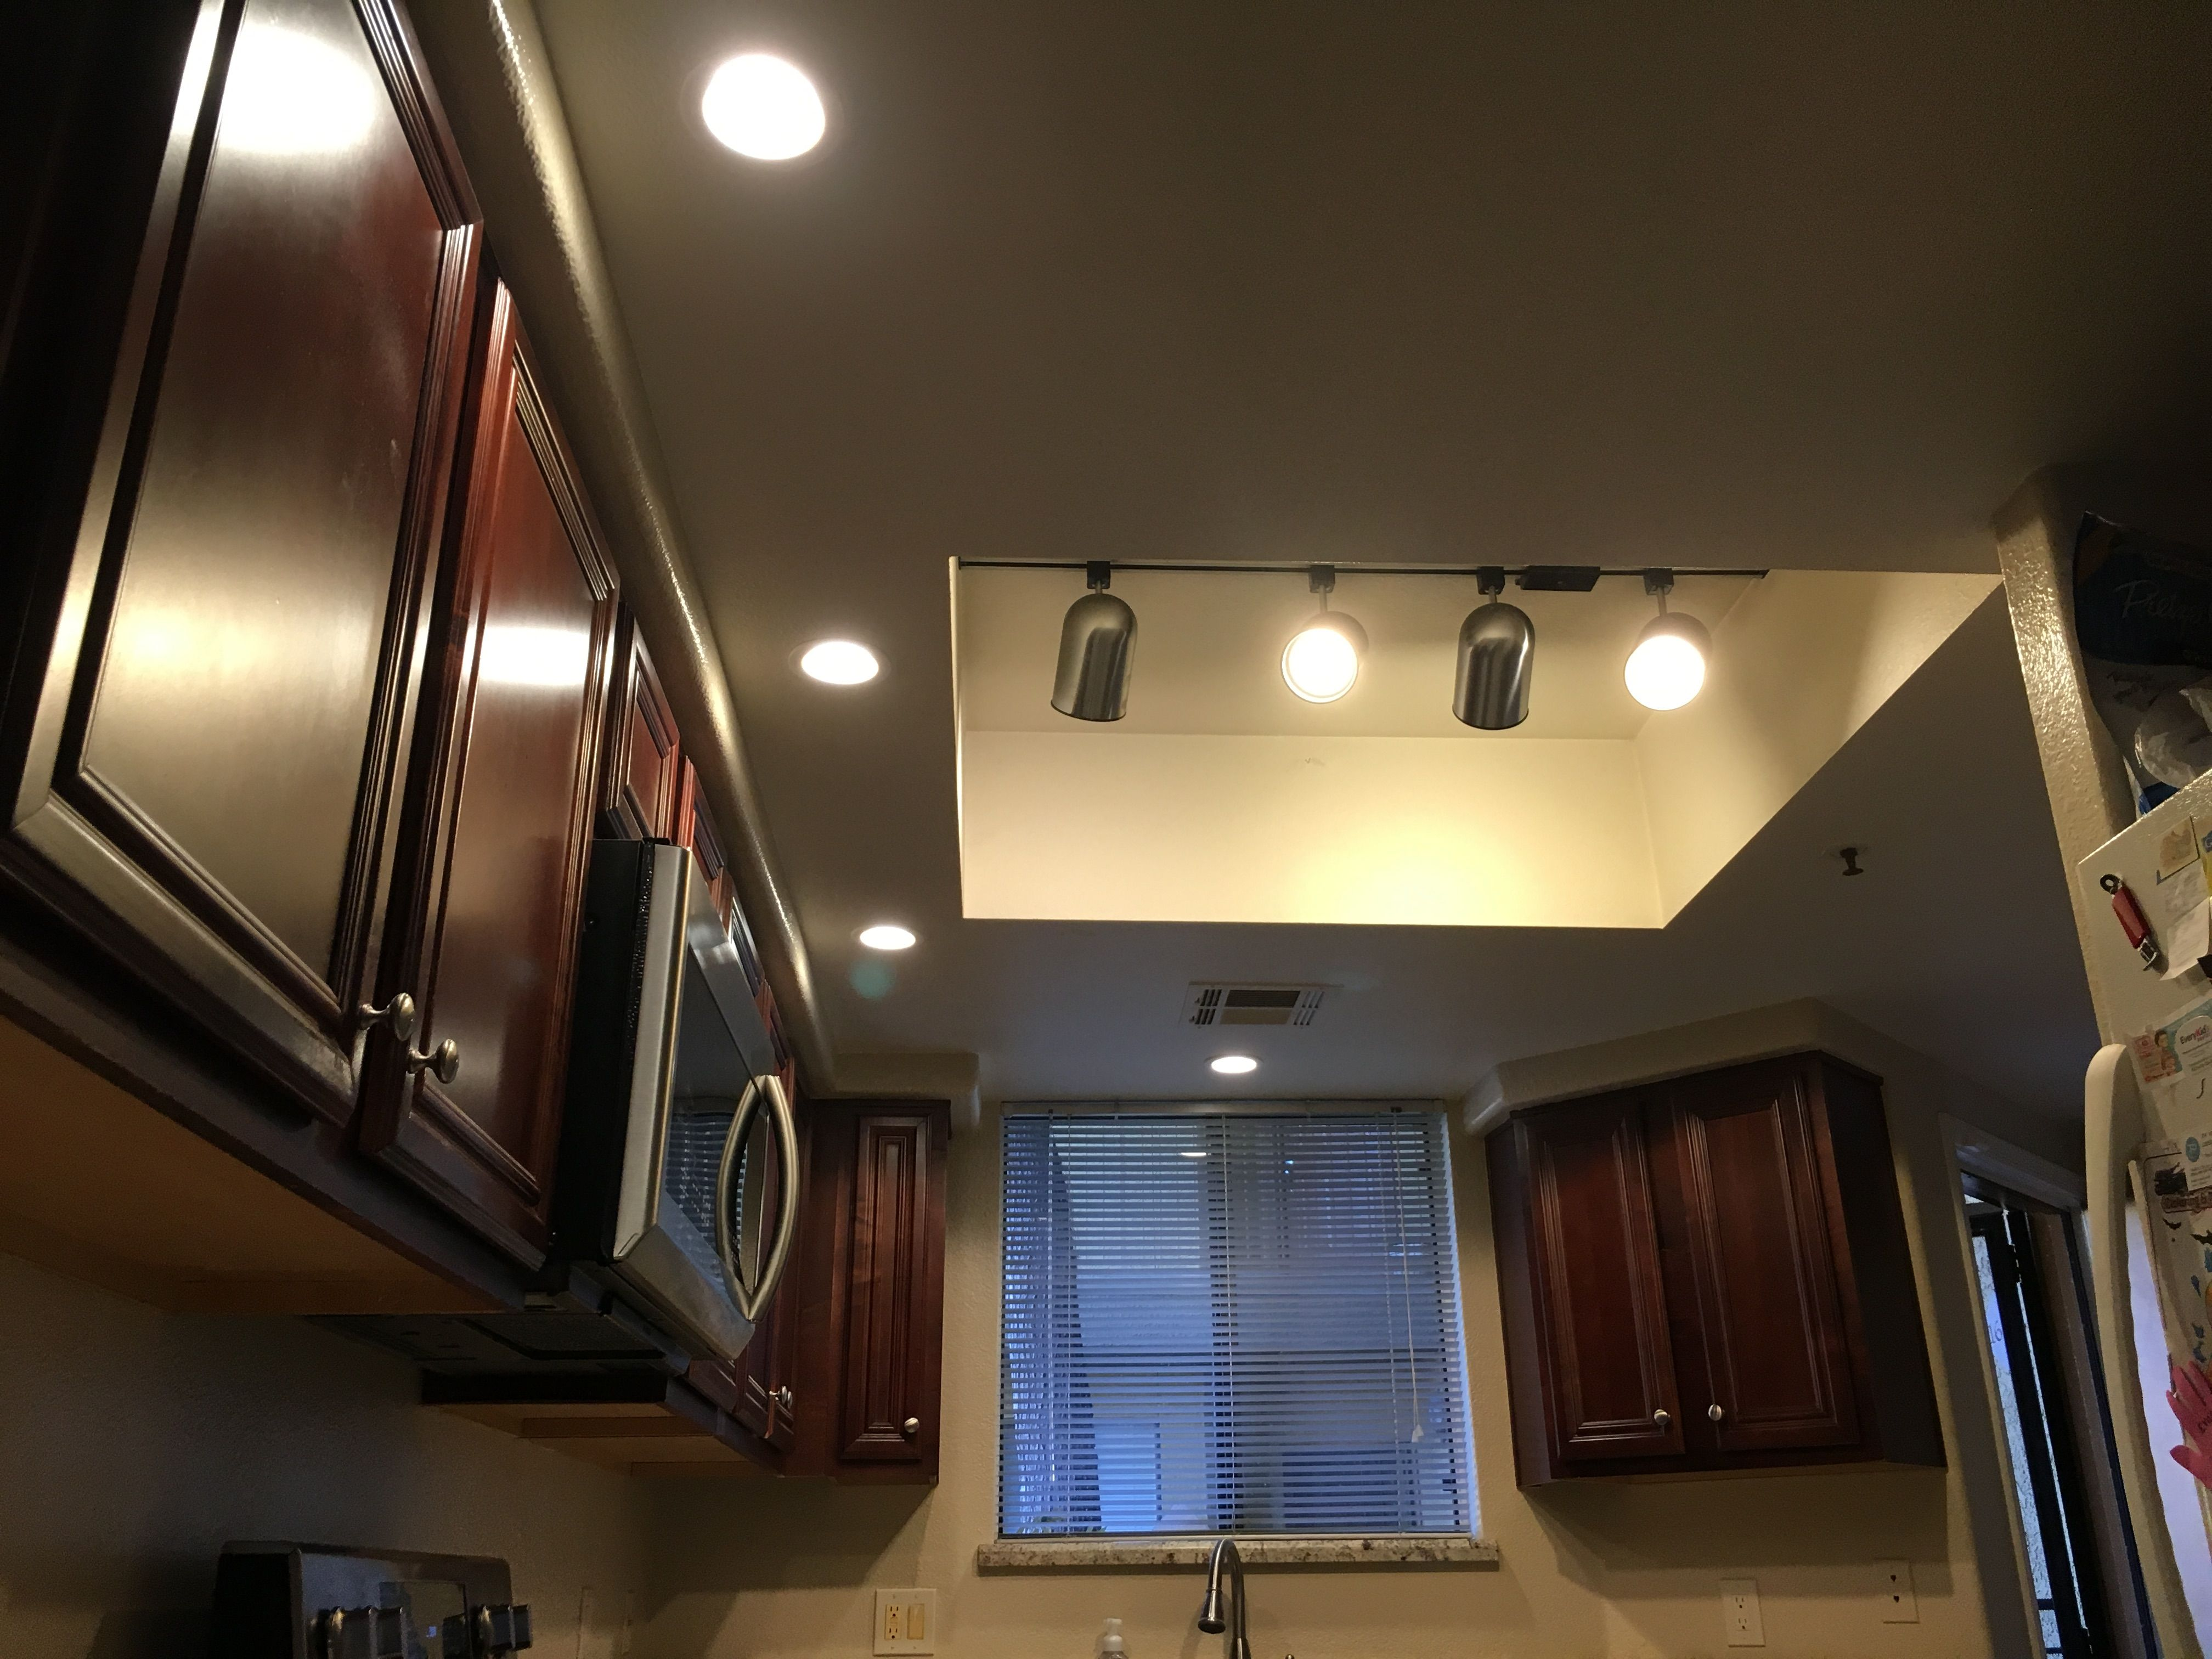 Kitchen lightinginstalled new switch 4 3000k 4 inch recessed kitchen lightinginstalled new switch 4 3000k 4 inch recessed lights on a aloadofball Gallery